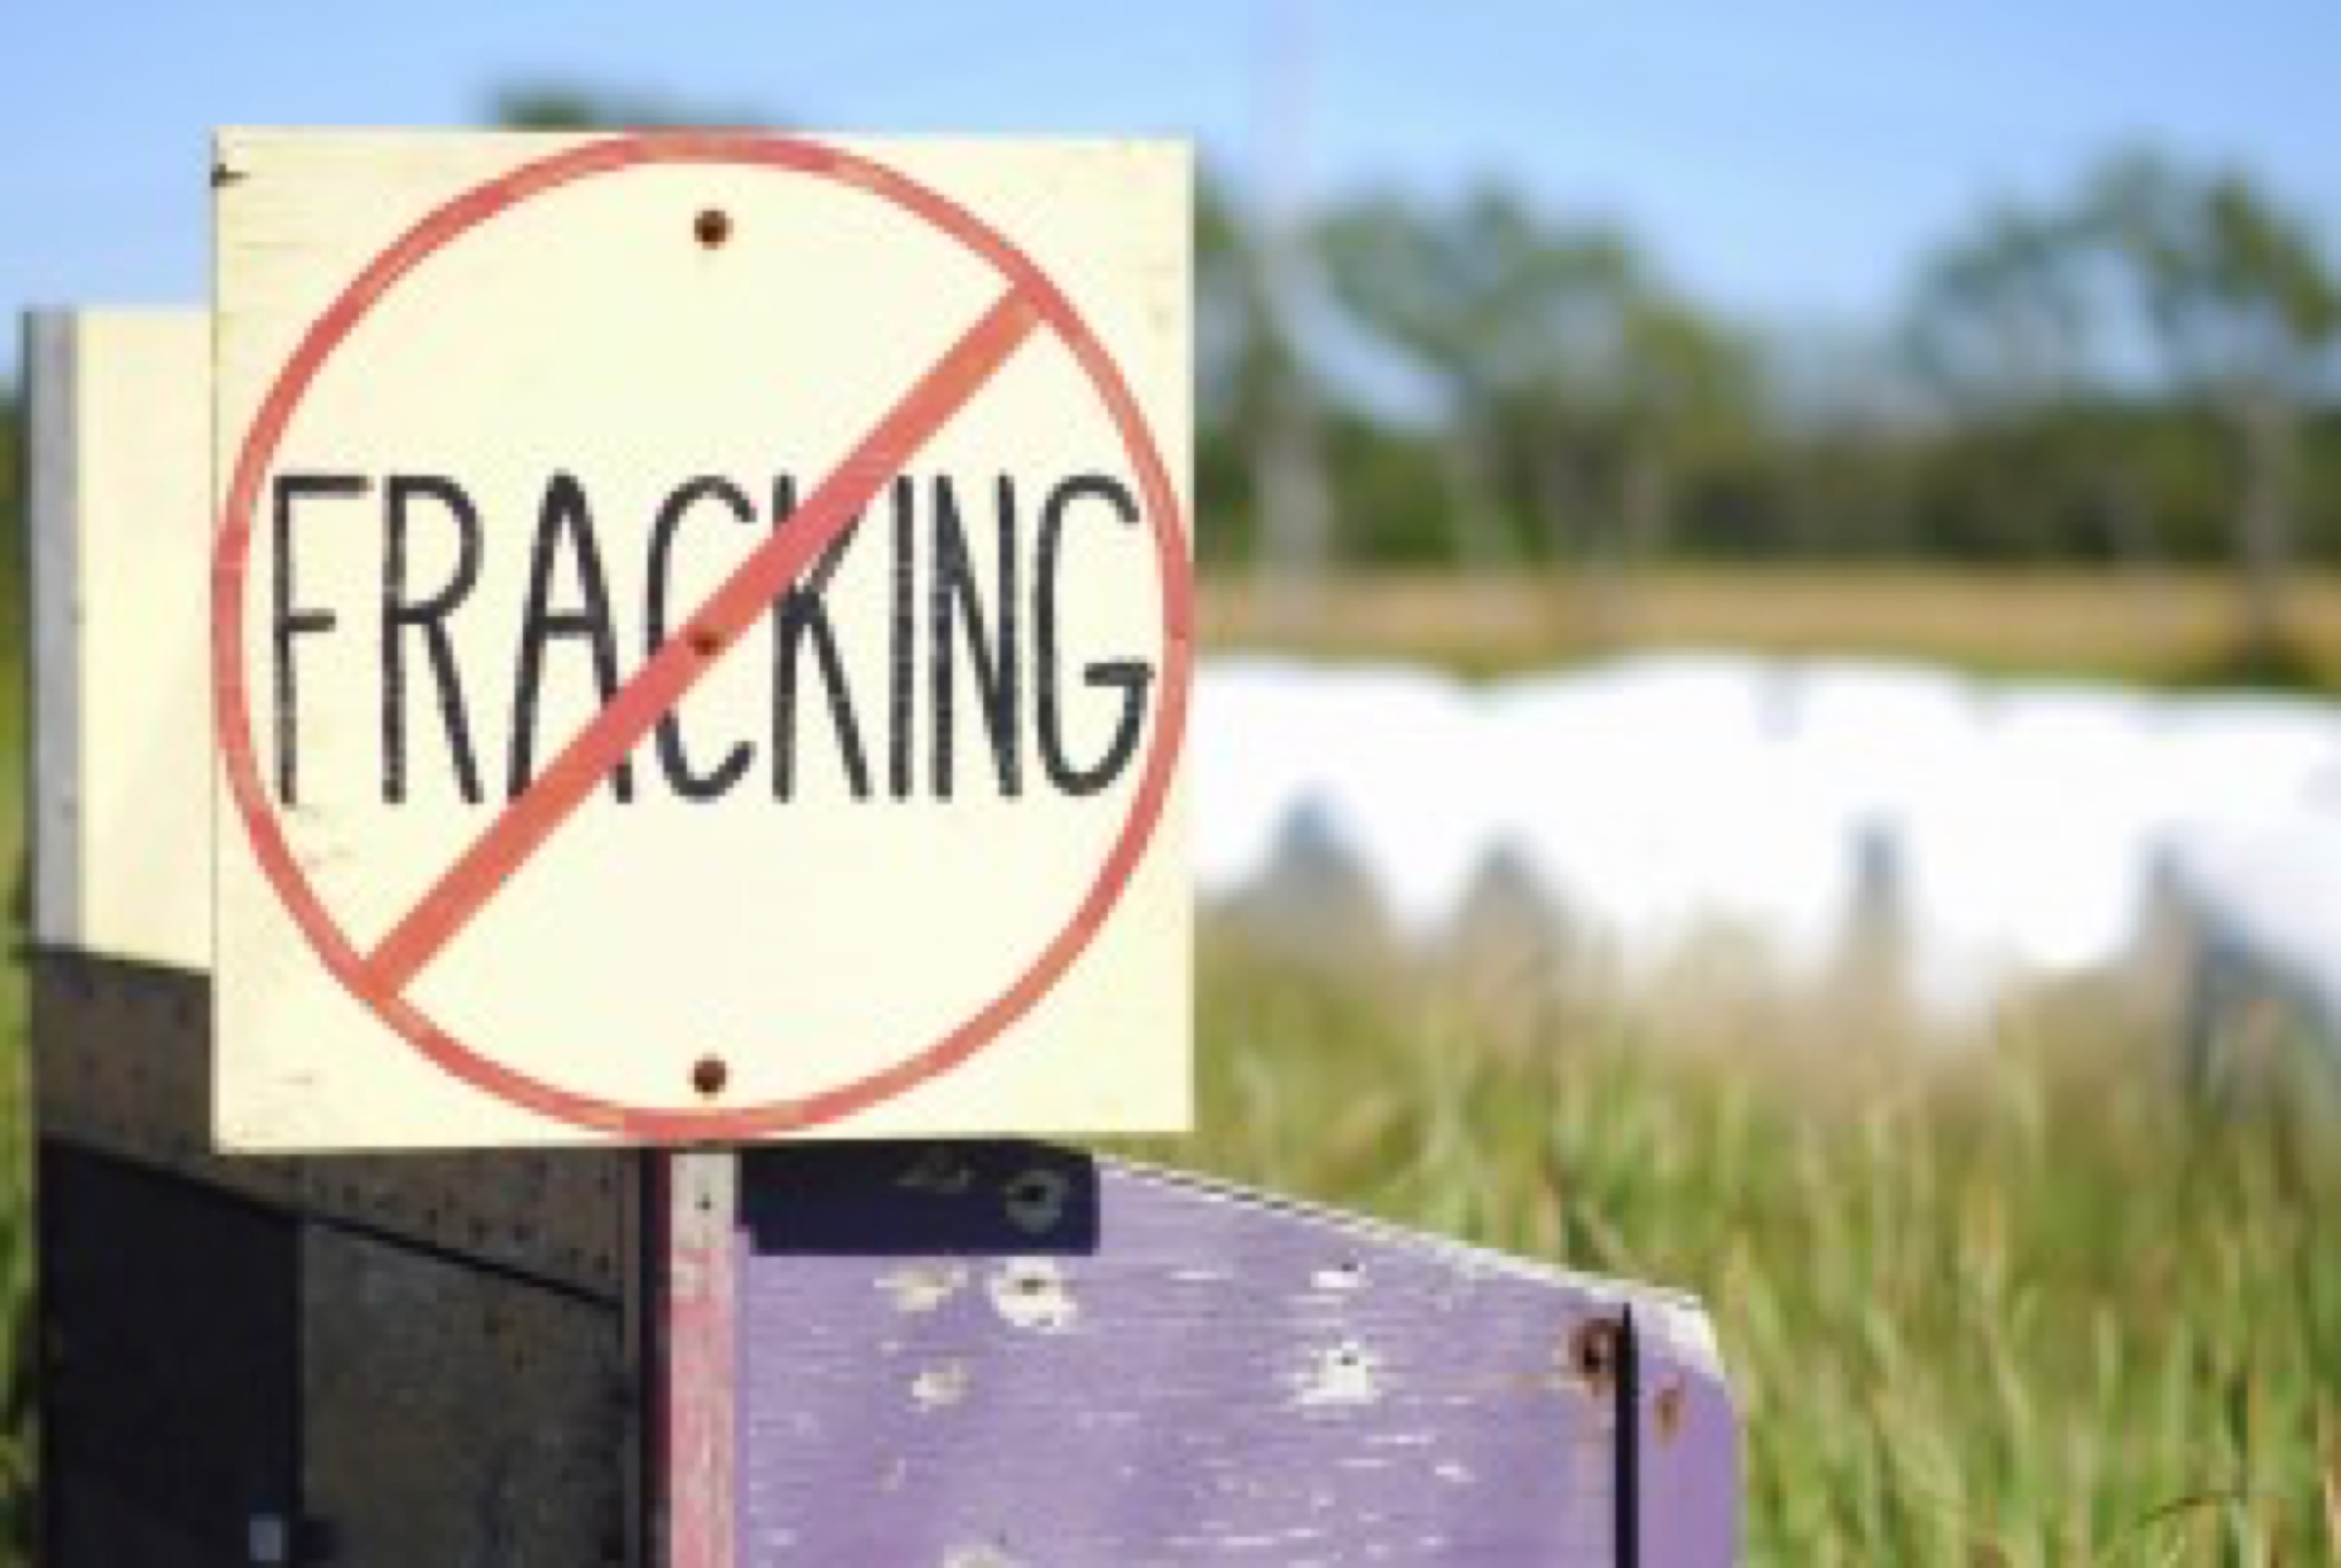 Hand-painted No Fracking Sign in Rural Setting, farmland and hay bales in background